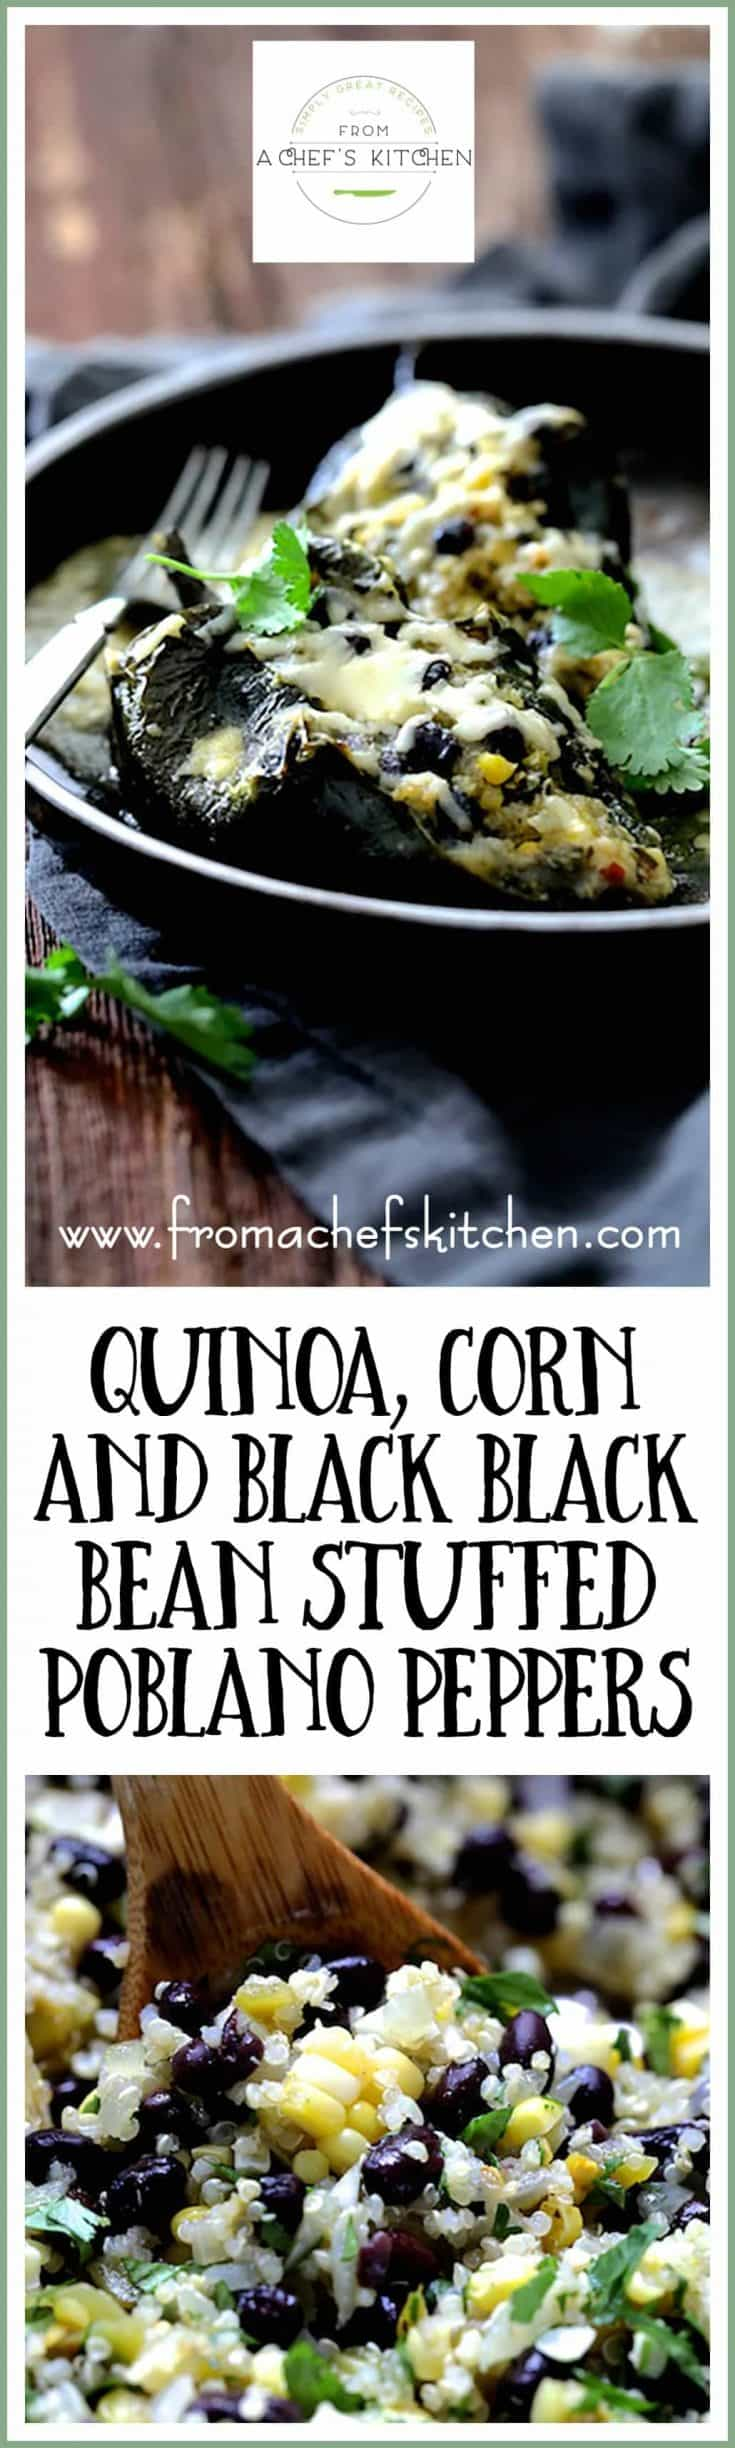 Quinoa Corn and Black Bean Stuffed Poblano Peppers are the best kind of vegetarian comfort food!  Protein-rich quinoa, corn, black beans, stuffed into smoky roasted peppers with a green chile sauce and plenty of CHEESE!  #quinoa #corn #blackbean #stuffedpoblanopeppers #vegetarian